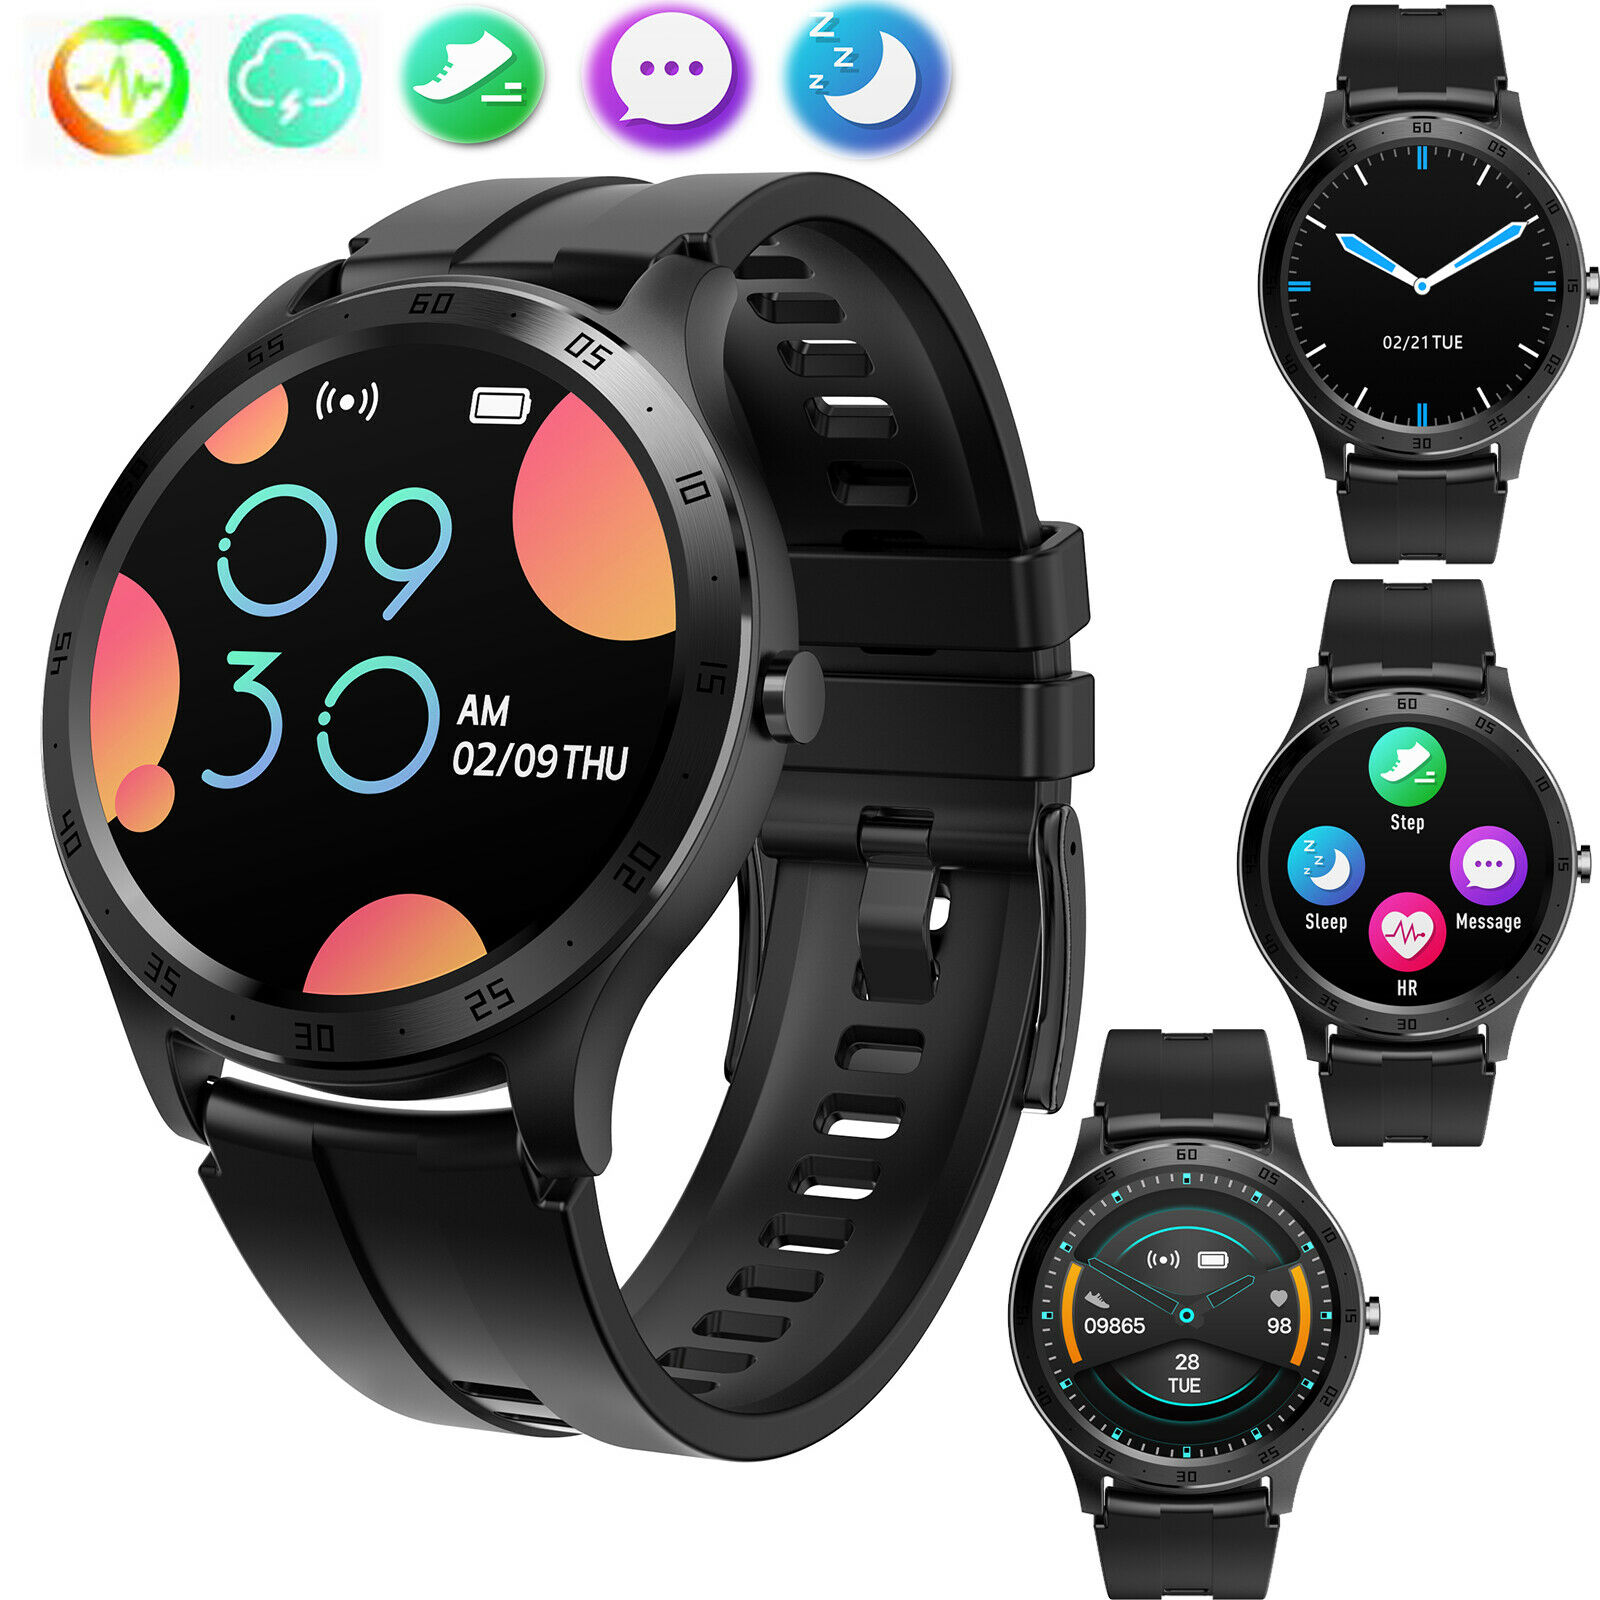 Bluetooth Smart Watch Wristband Sleep Monitor For Samsung S10 S9 S8 A40 A50 A70 a40 bluetooth Featured for monitor s10 samsung sleep smart watch wristband